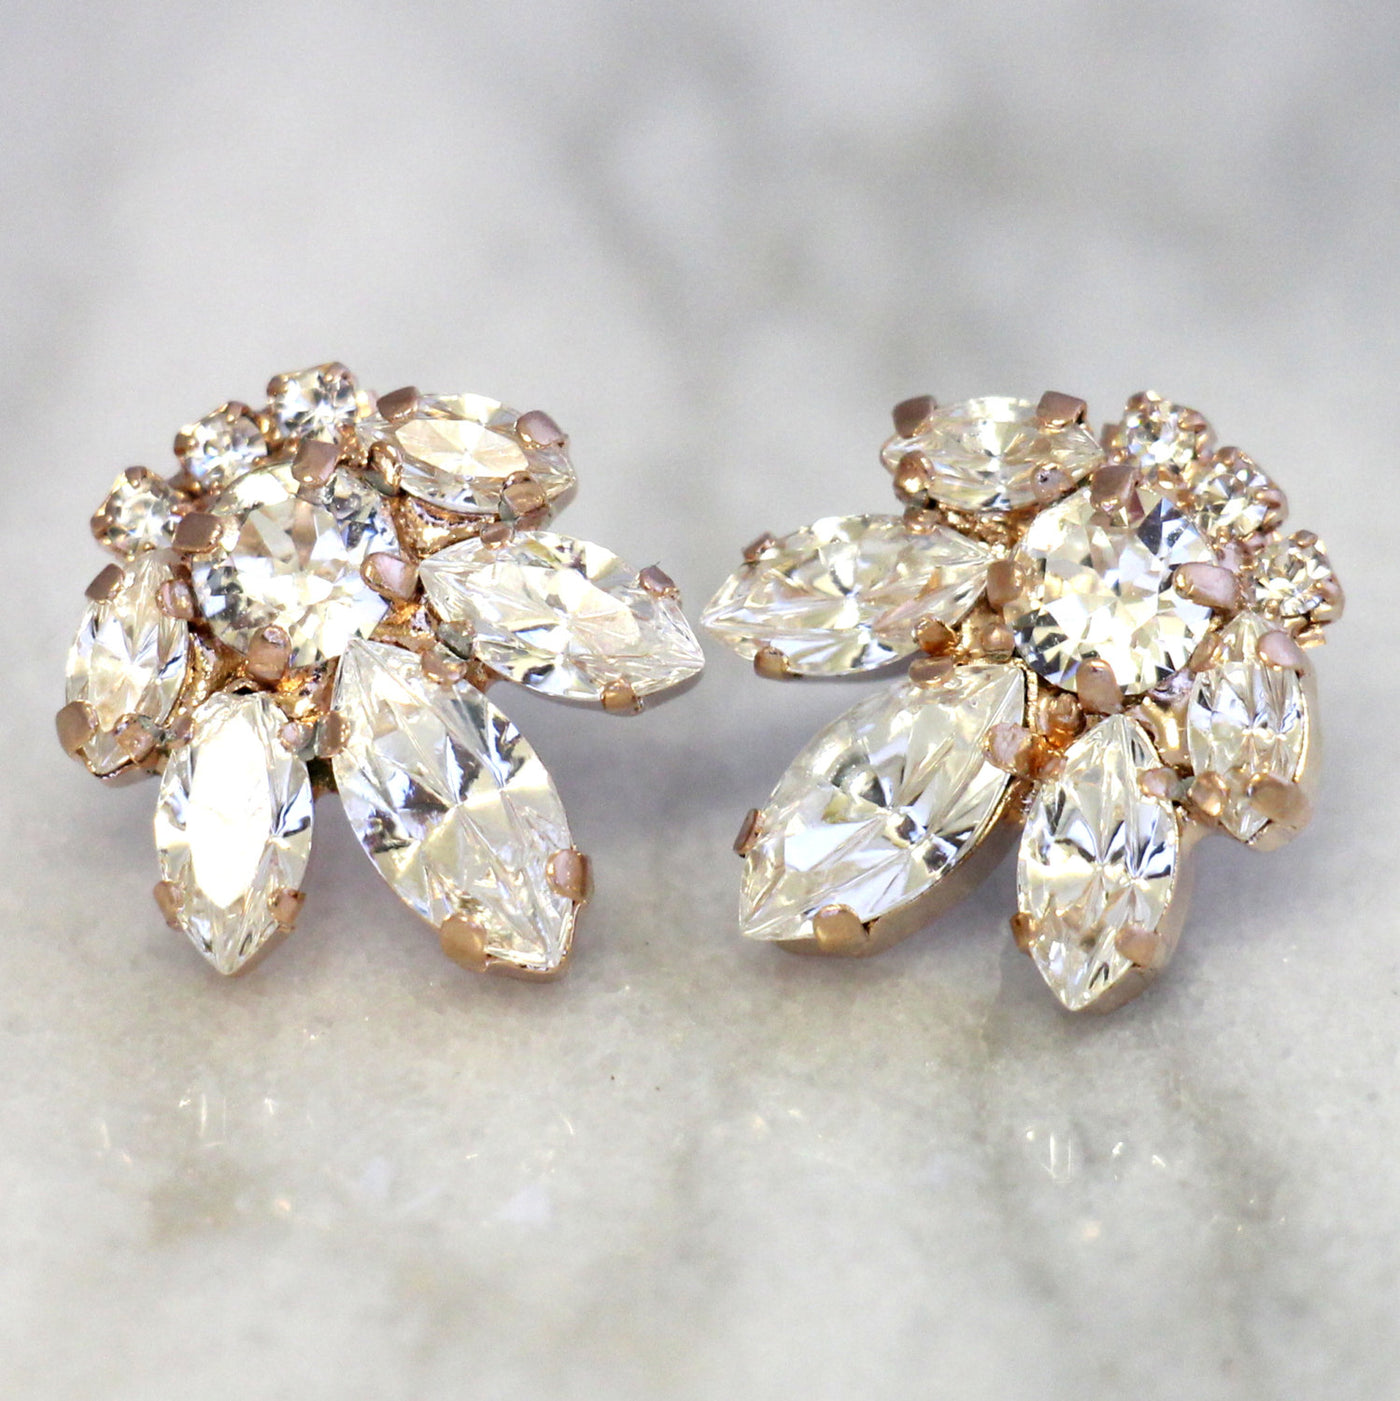 Bell Clear Crystal Swarovski Small Bridal Stud Earrings